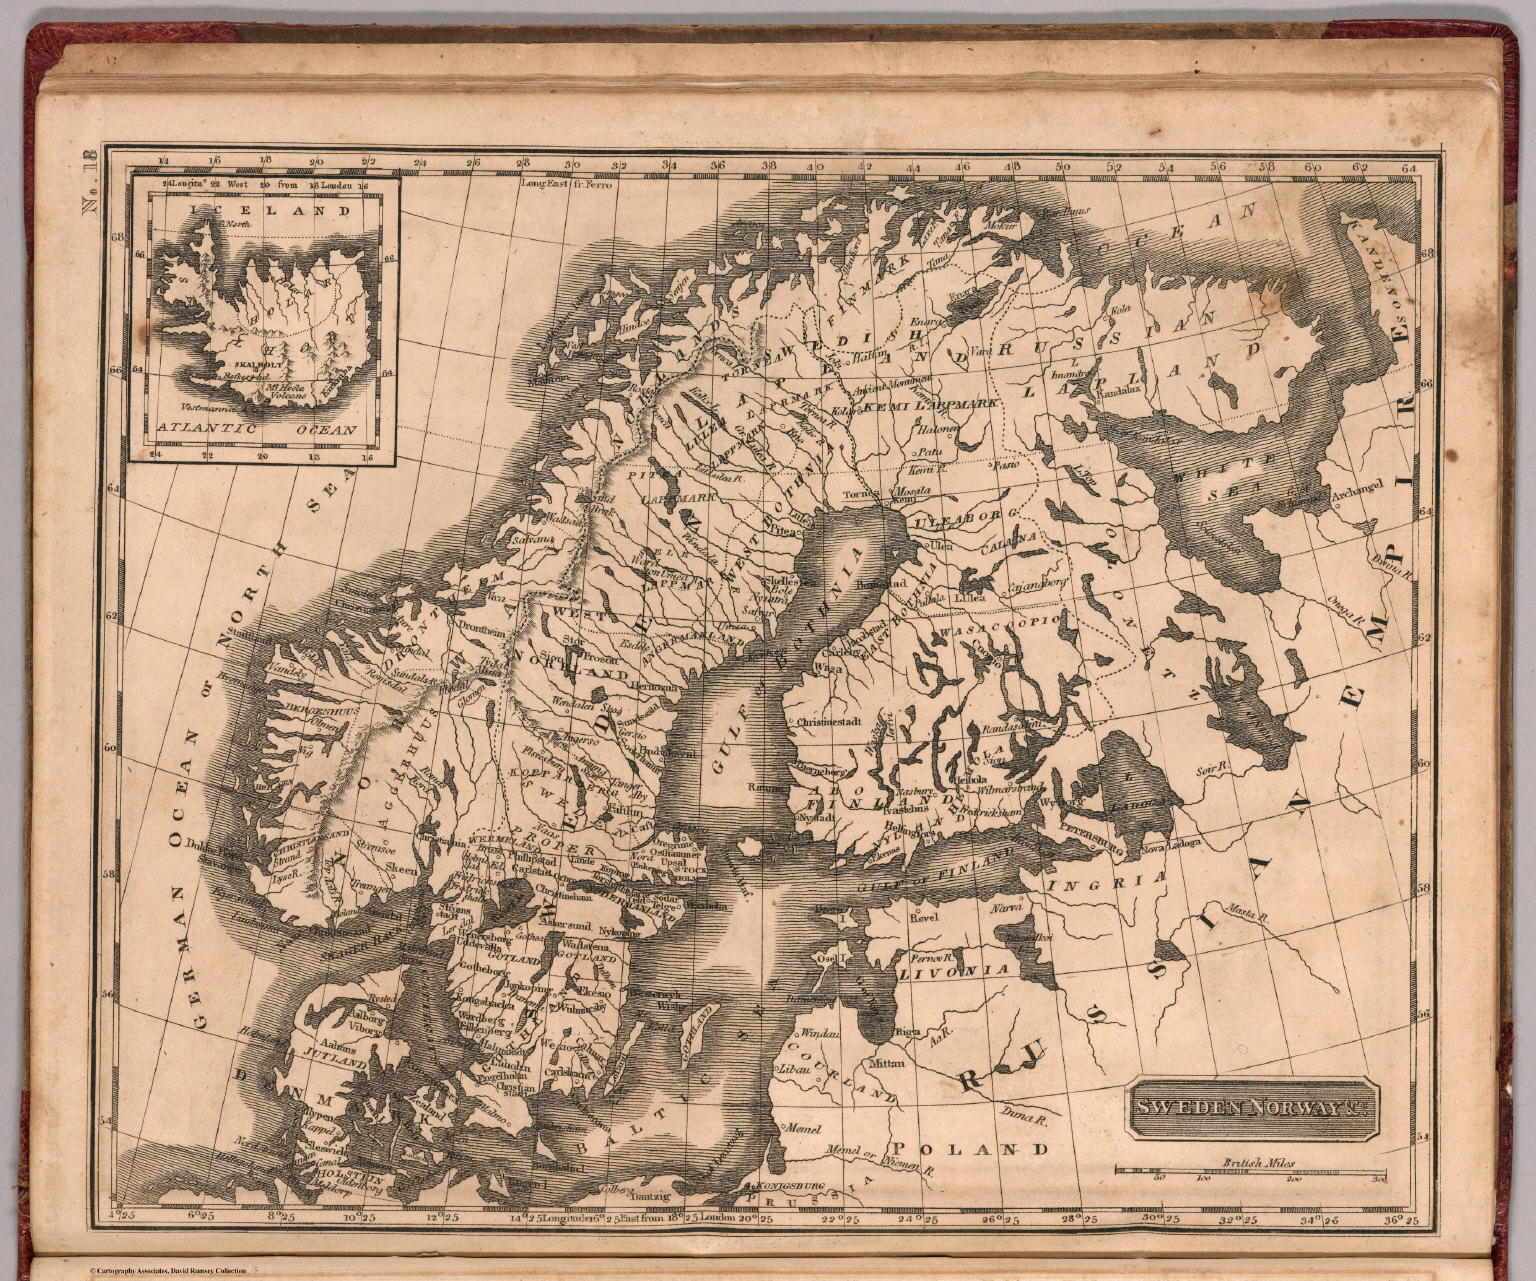 Sweden And Norway David Rumsey Historical Map Collection - Sweden map history